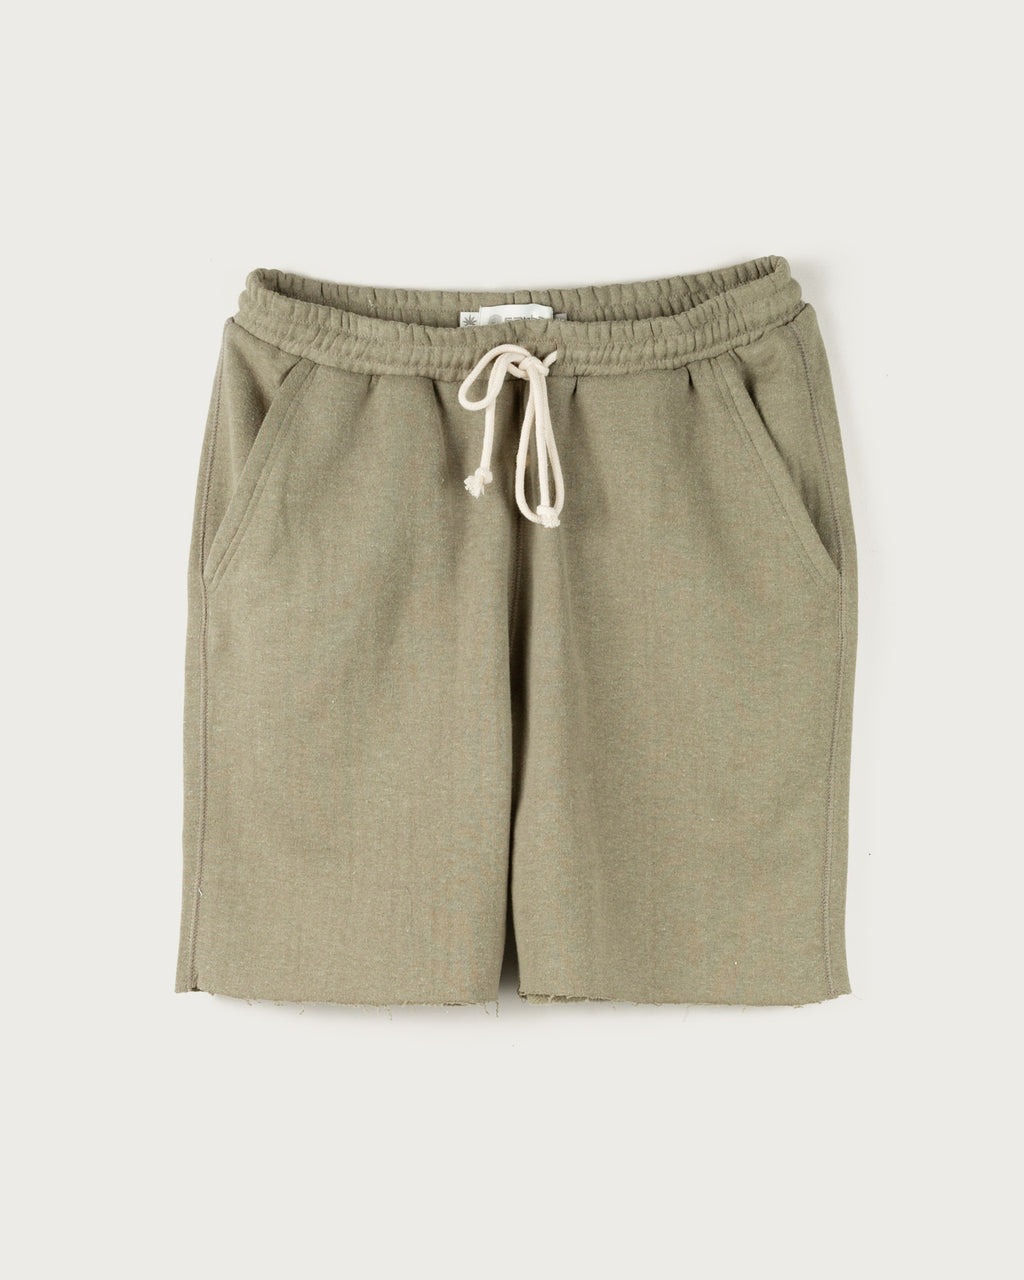 Satta Raw Hemp Shorts - Olive | SATTA